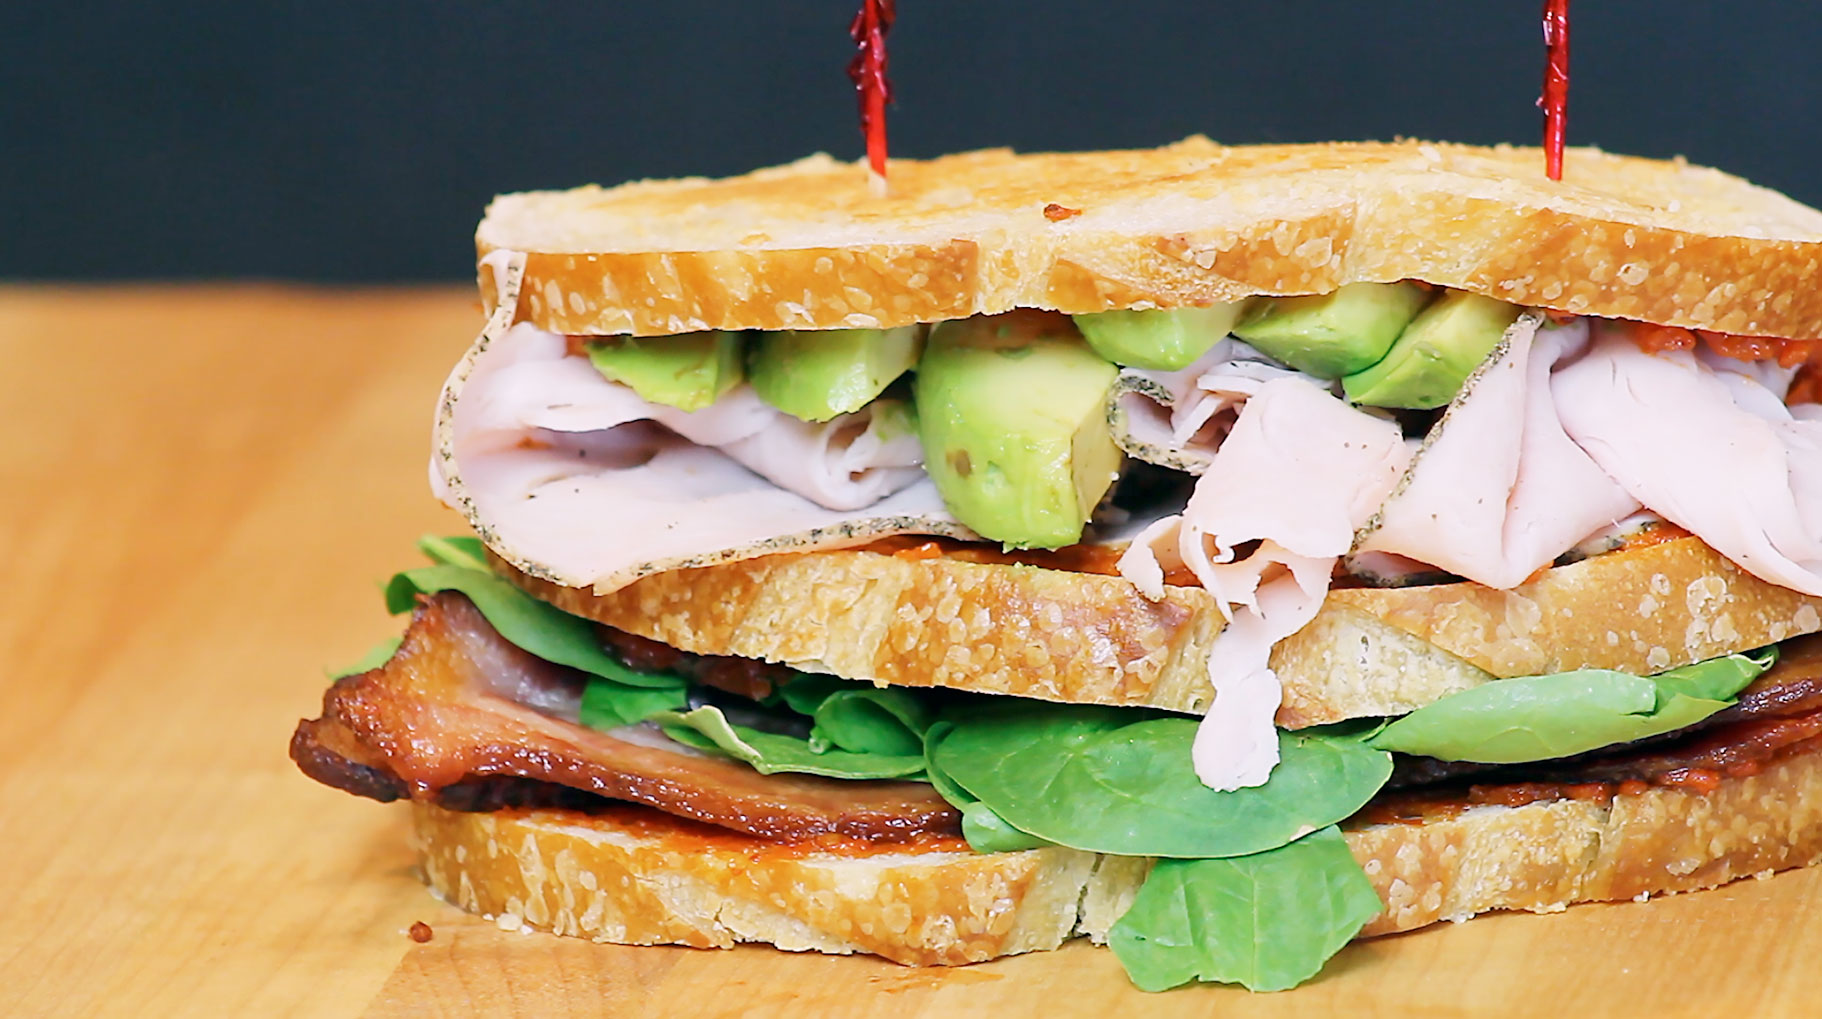 Bacon, Spinach and Sun Dried Tomato Turkey-Avocado Club Sandwich